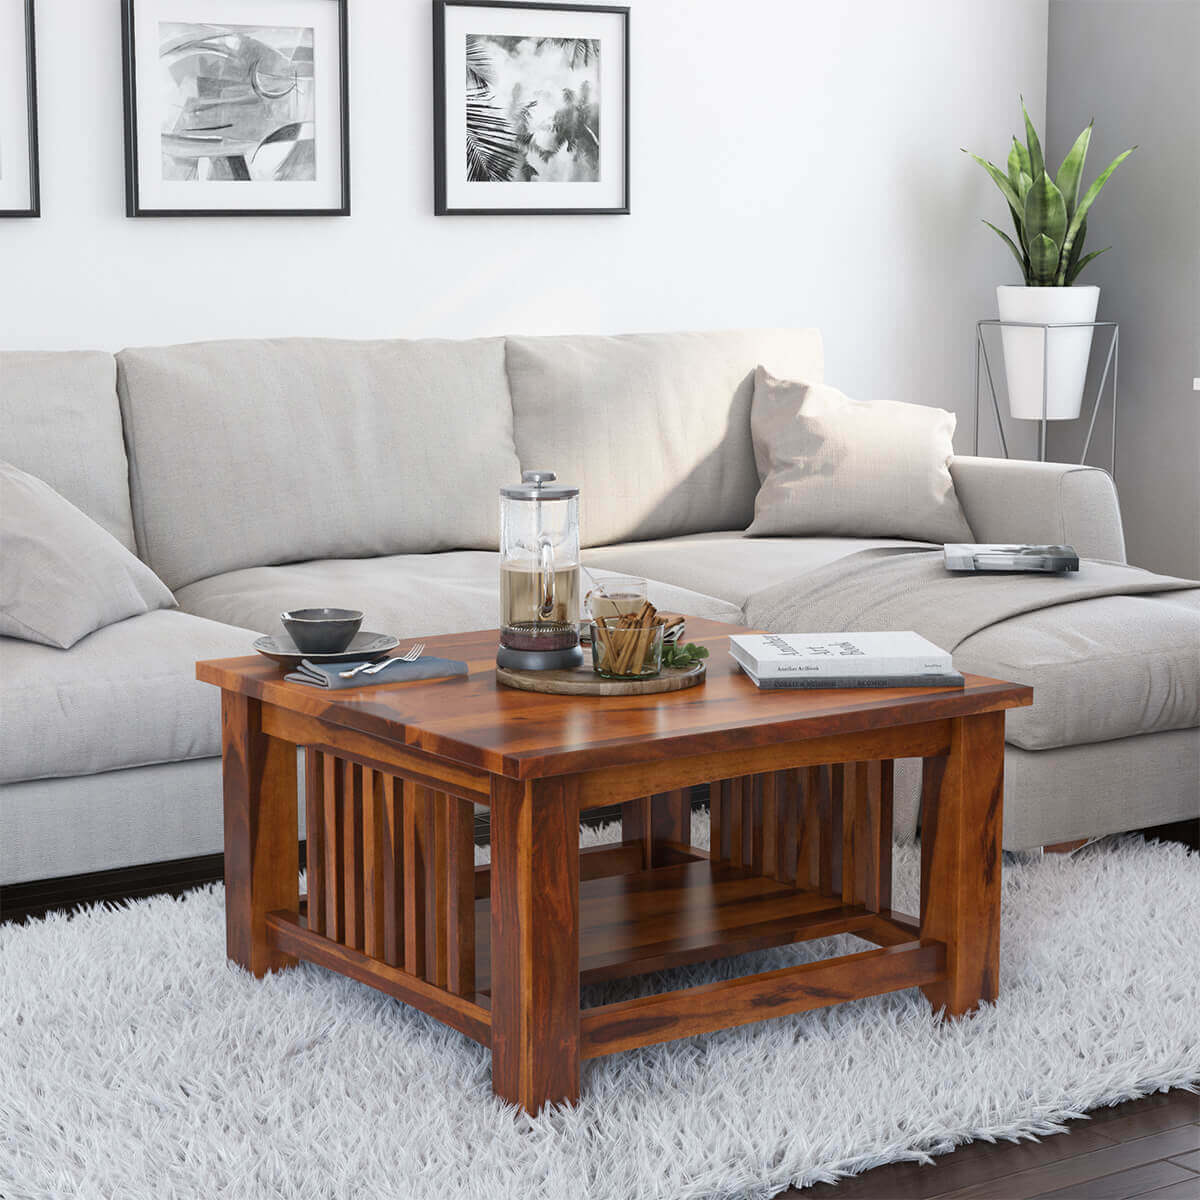 Square Coffee Table: Rustic Solid Wood Square Coffee Table Furniture